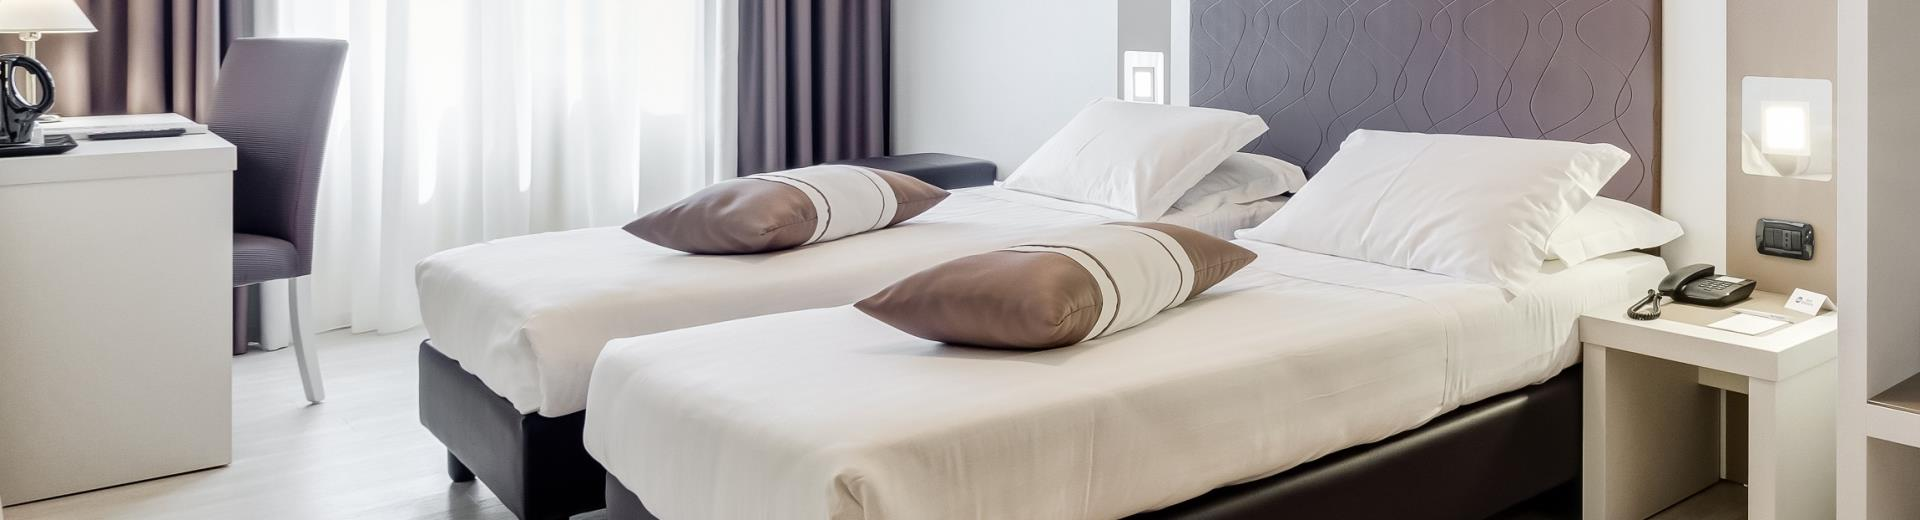 Comfortable rooms at Cassino 4 star Best Western Hotel: hotel Rocca